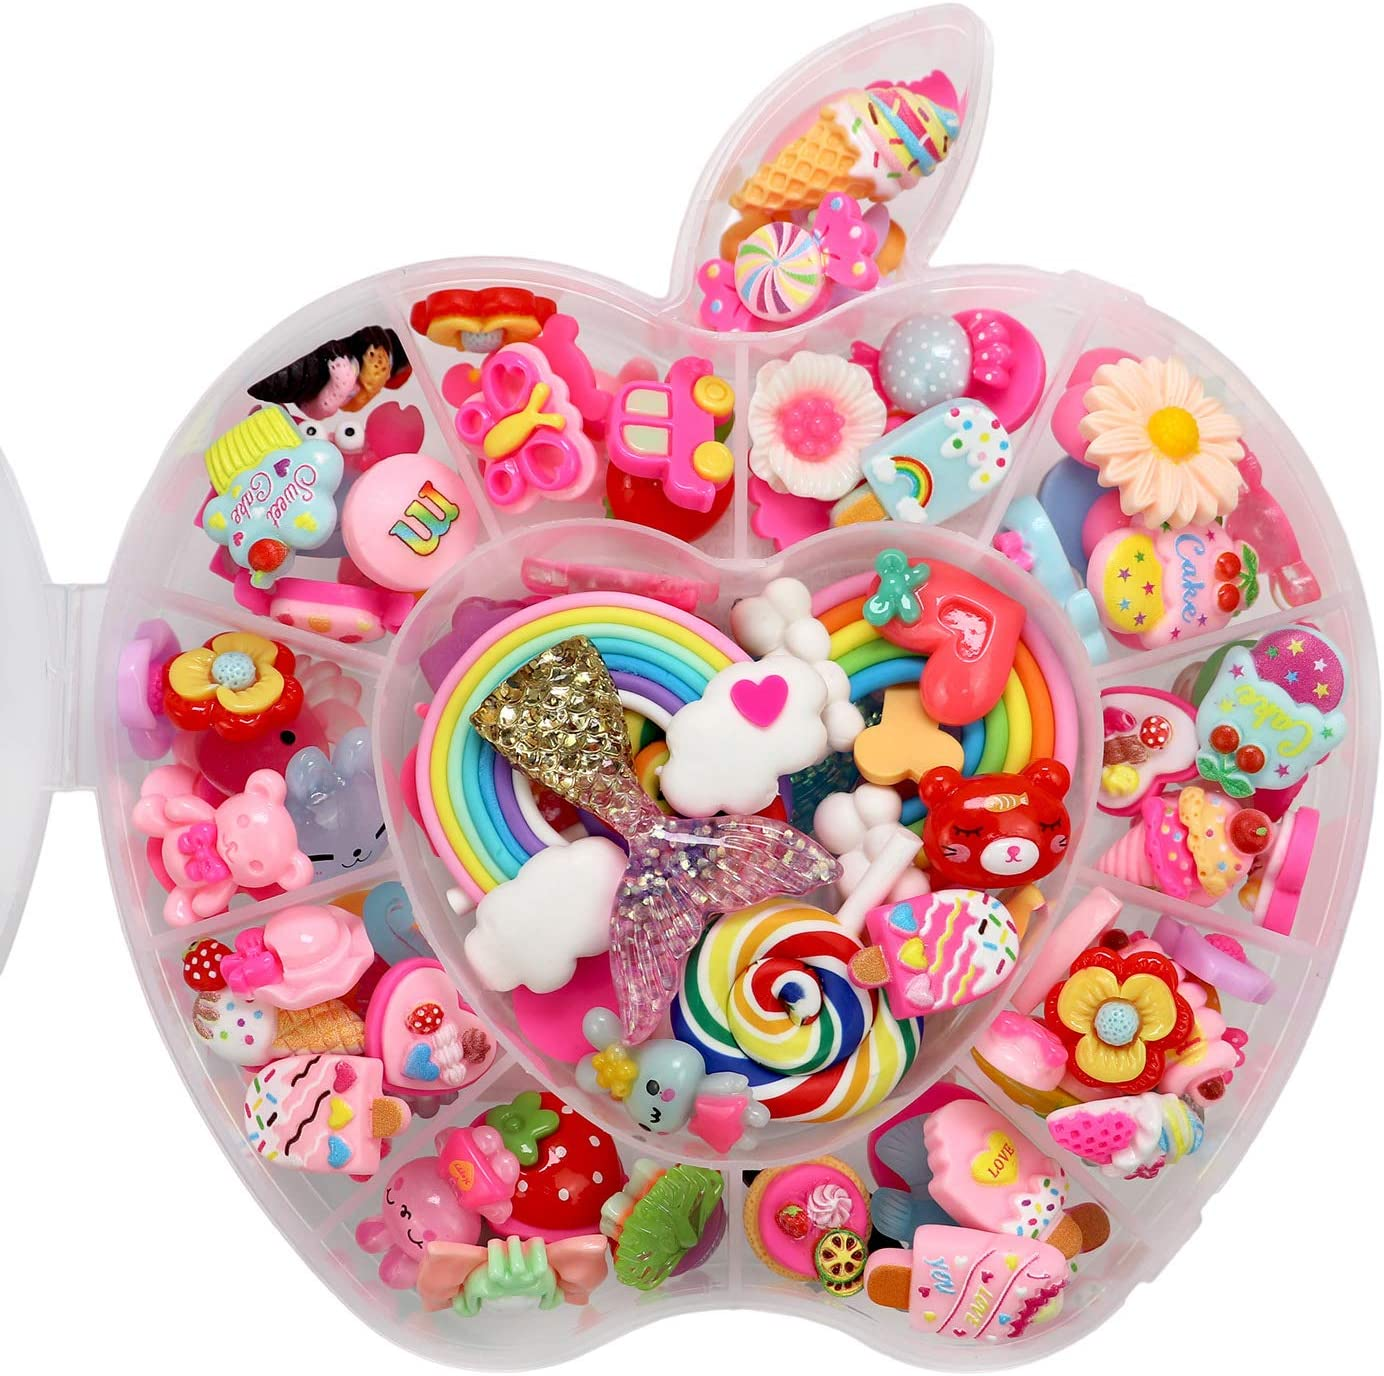 17Tek 100 pcs Slime Charms Cute Set,Resin Flatback Charms and Containers,Mixed Candy Cake Sweets Animal Rainbow for DIY Crafts, Scrapbooking, Craft Decorate Making (Apple Style)